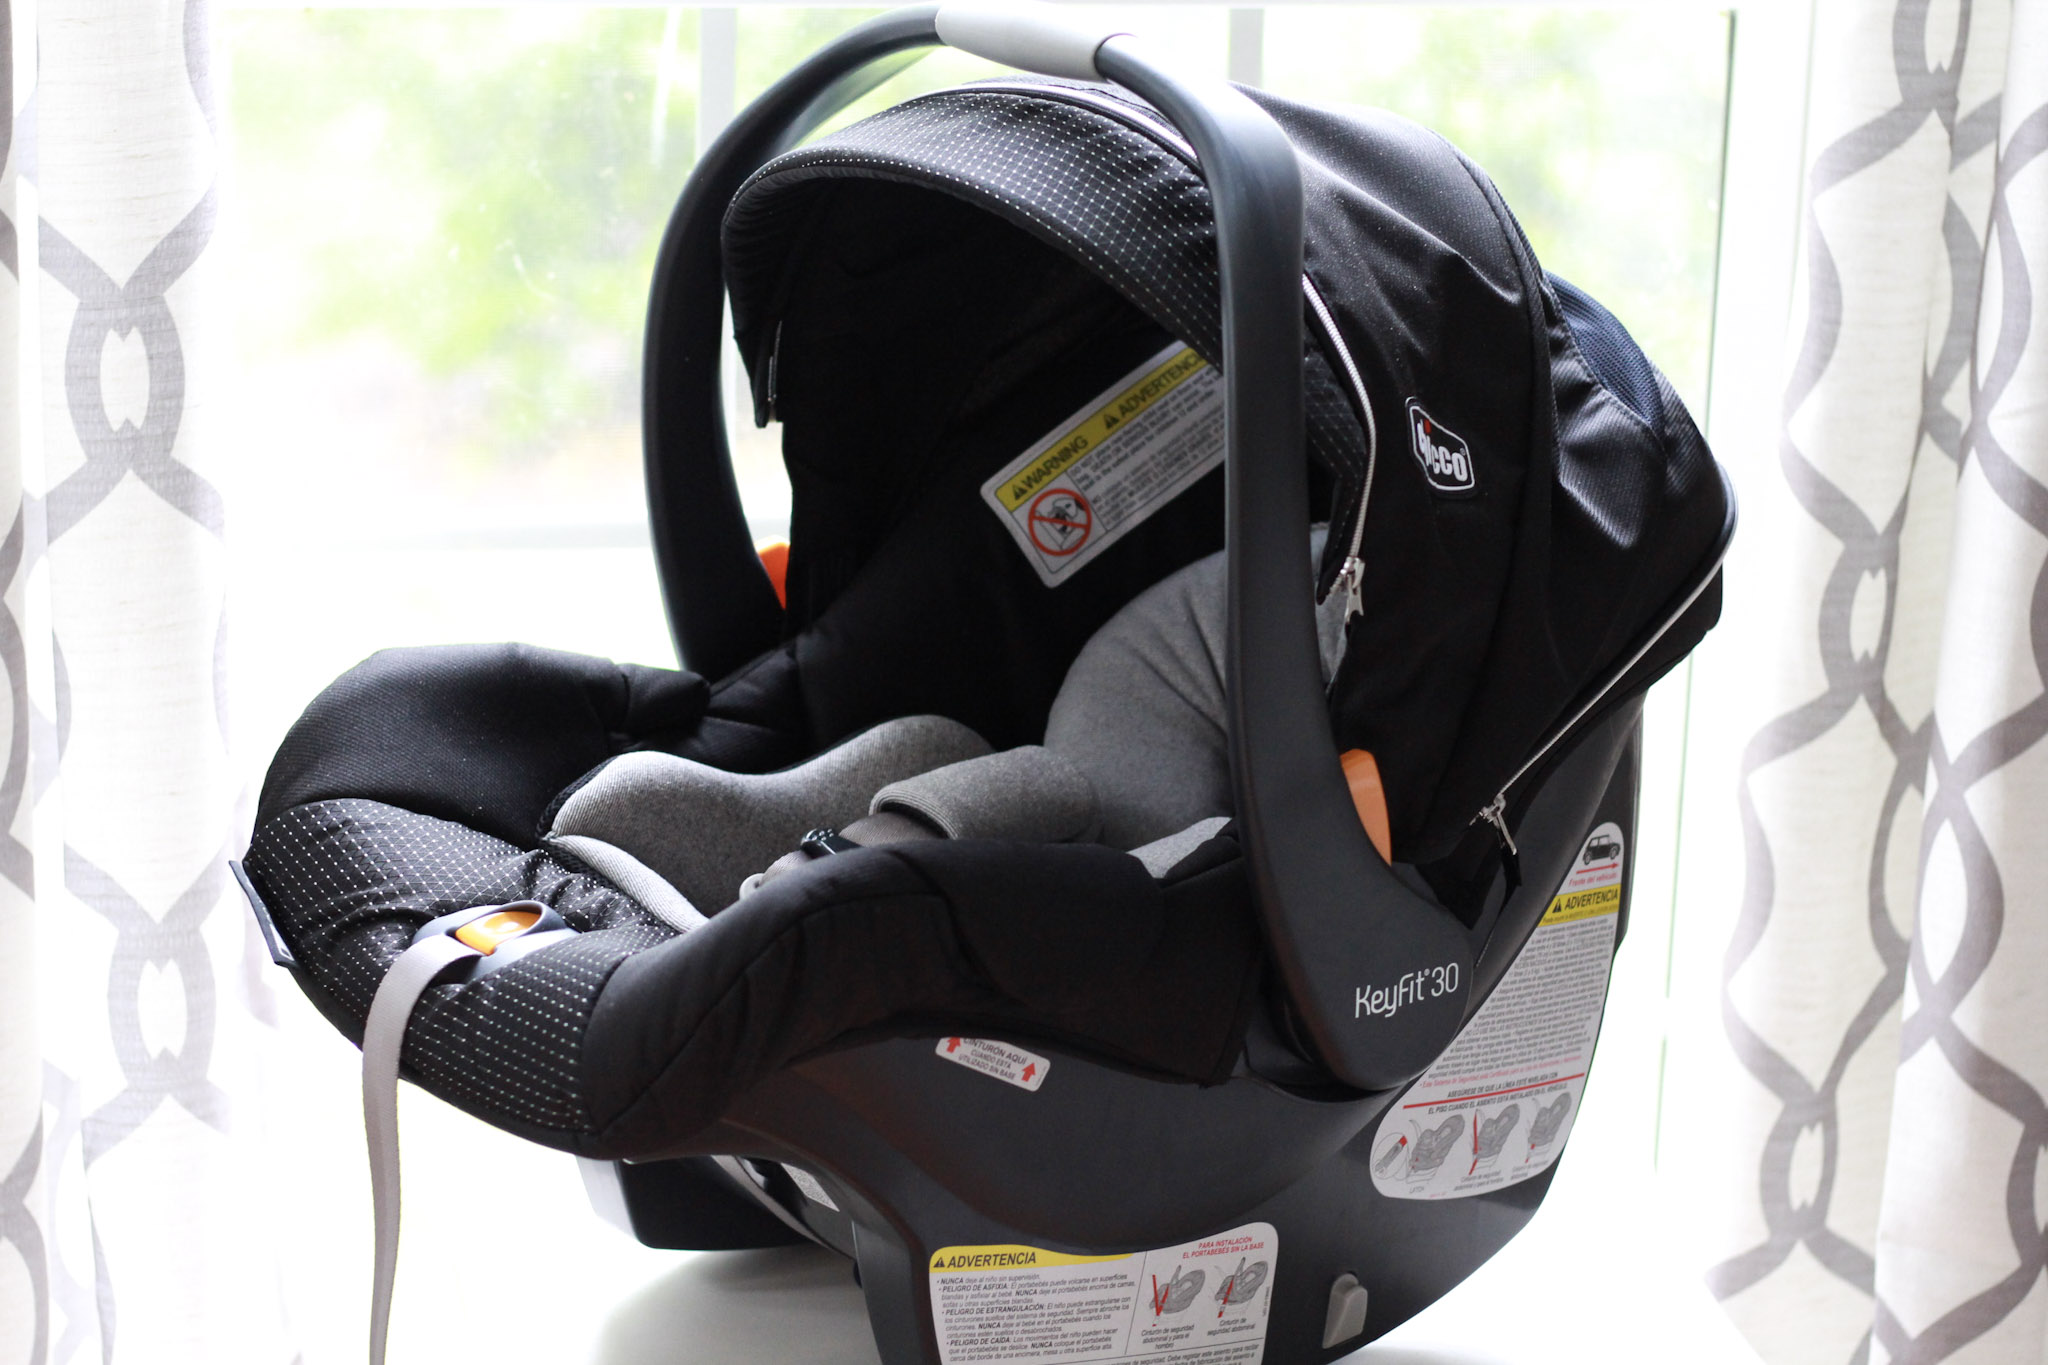 safest carseat - chicco keyfit30